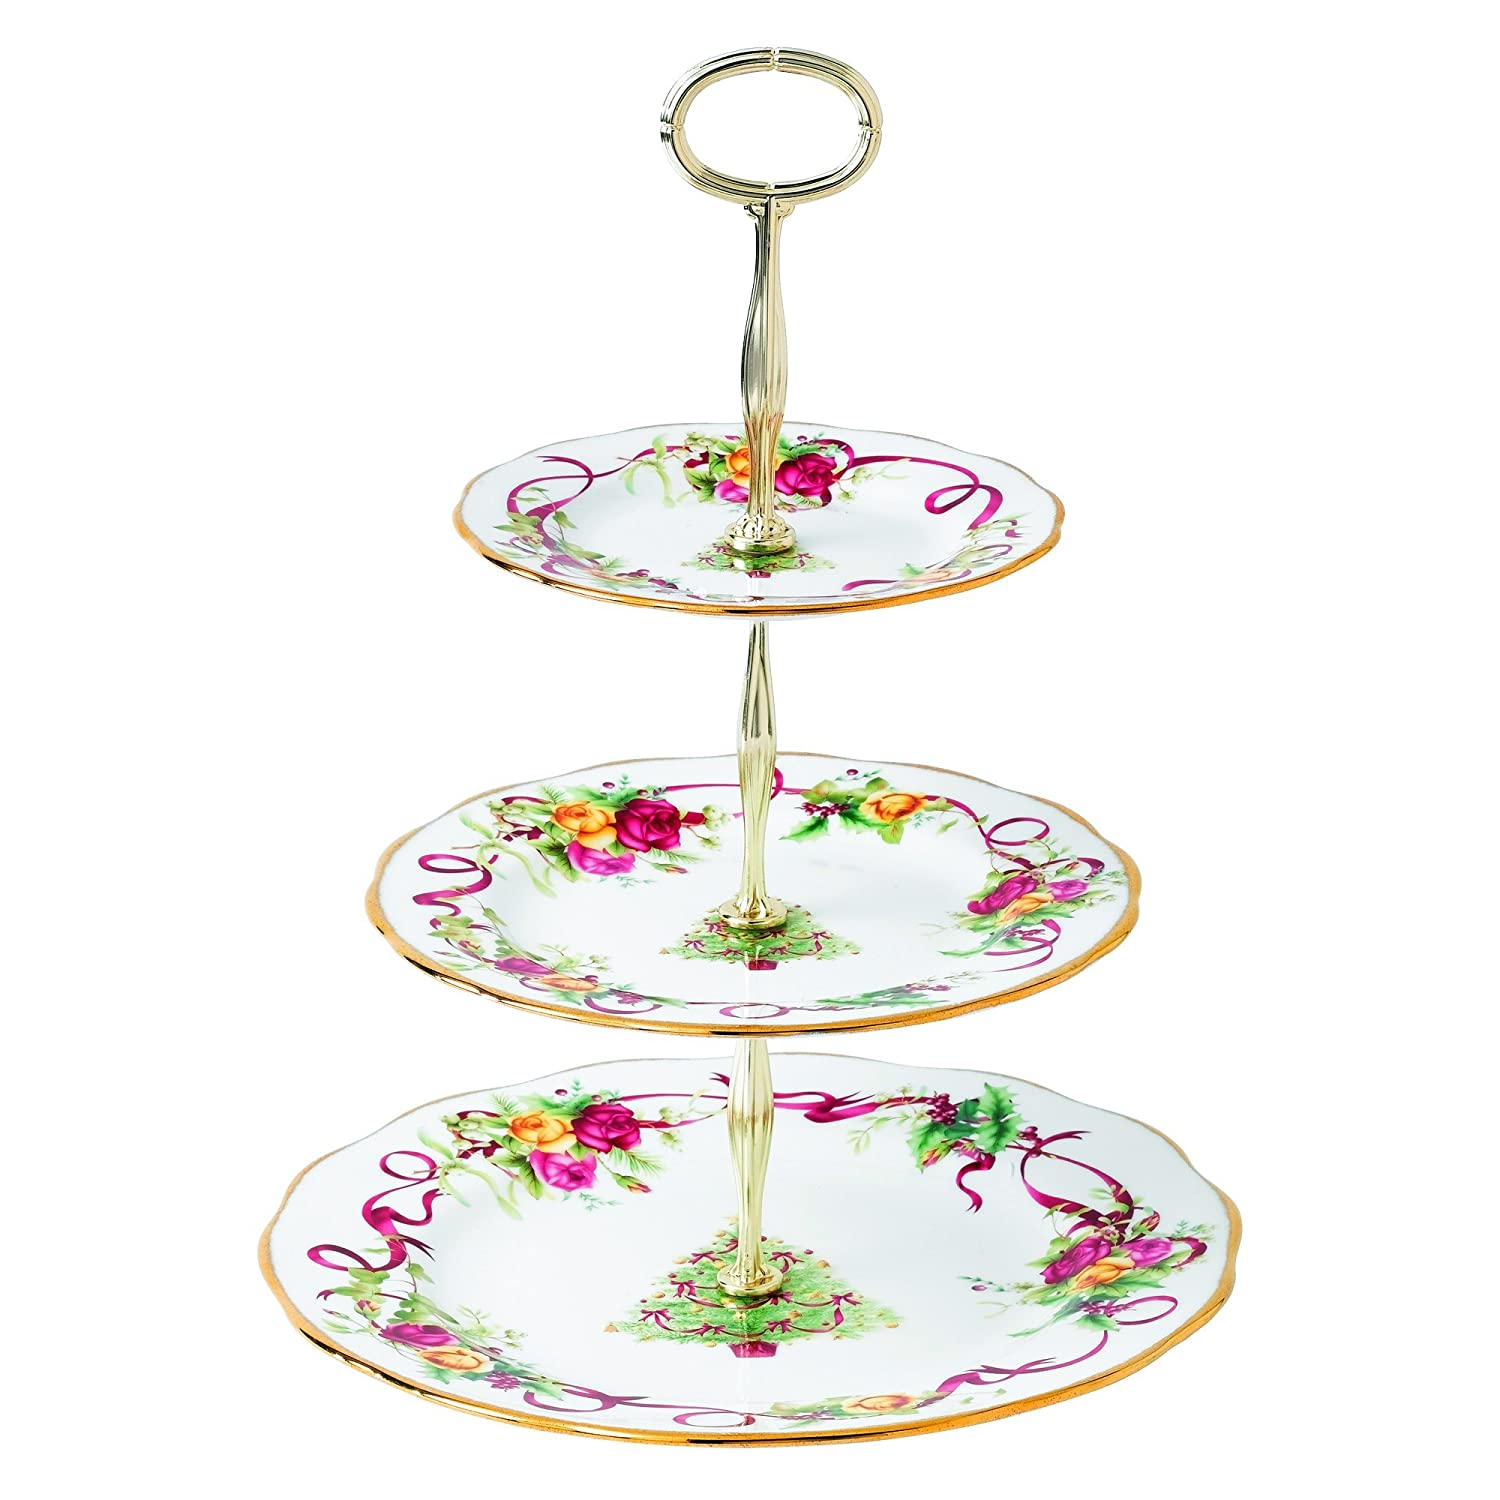 Old Country Roses Christmas Tree 3-Tier Cake Stand by Royal Albert   B0084FDFYQ